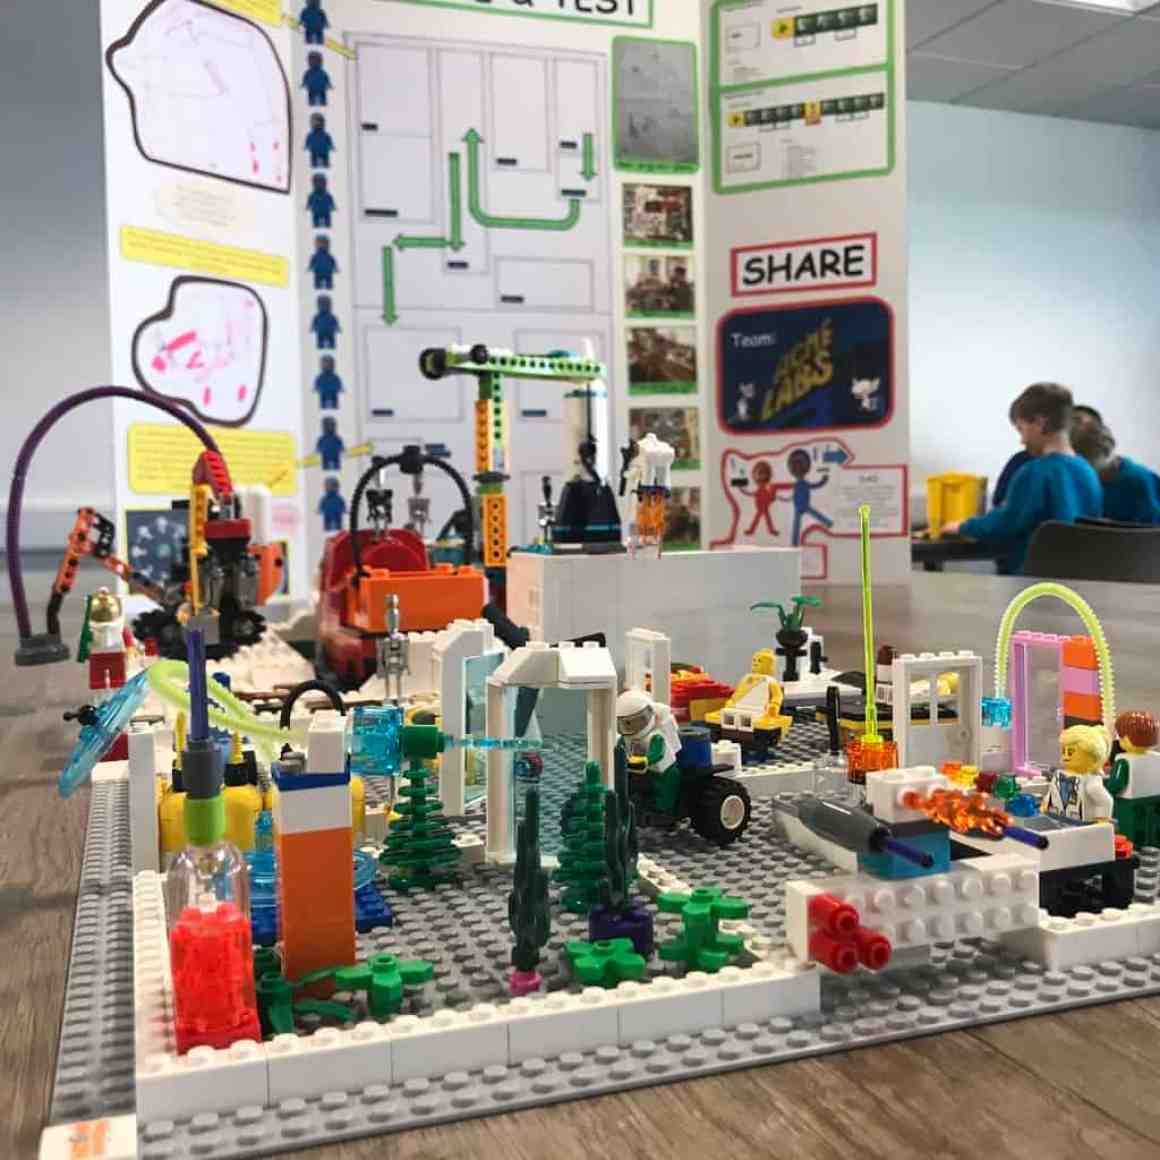 STEM Adventurers use LEGO to plan life on the moon